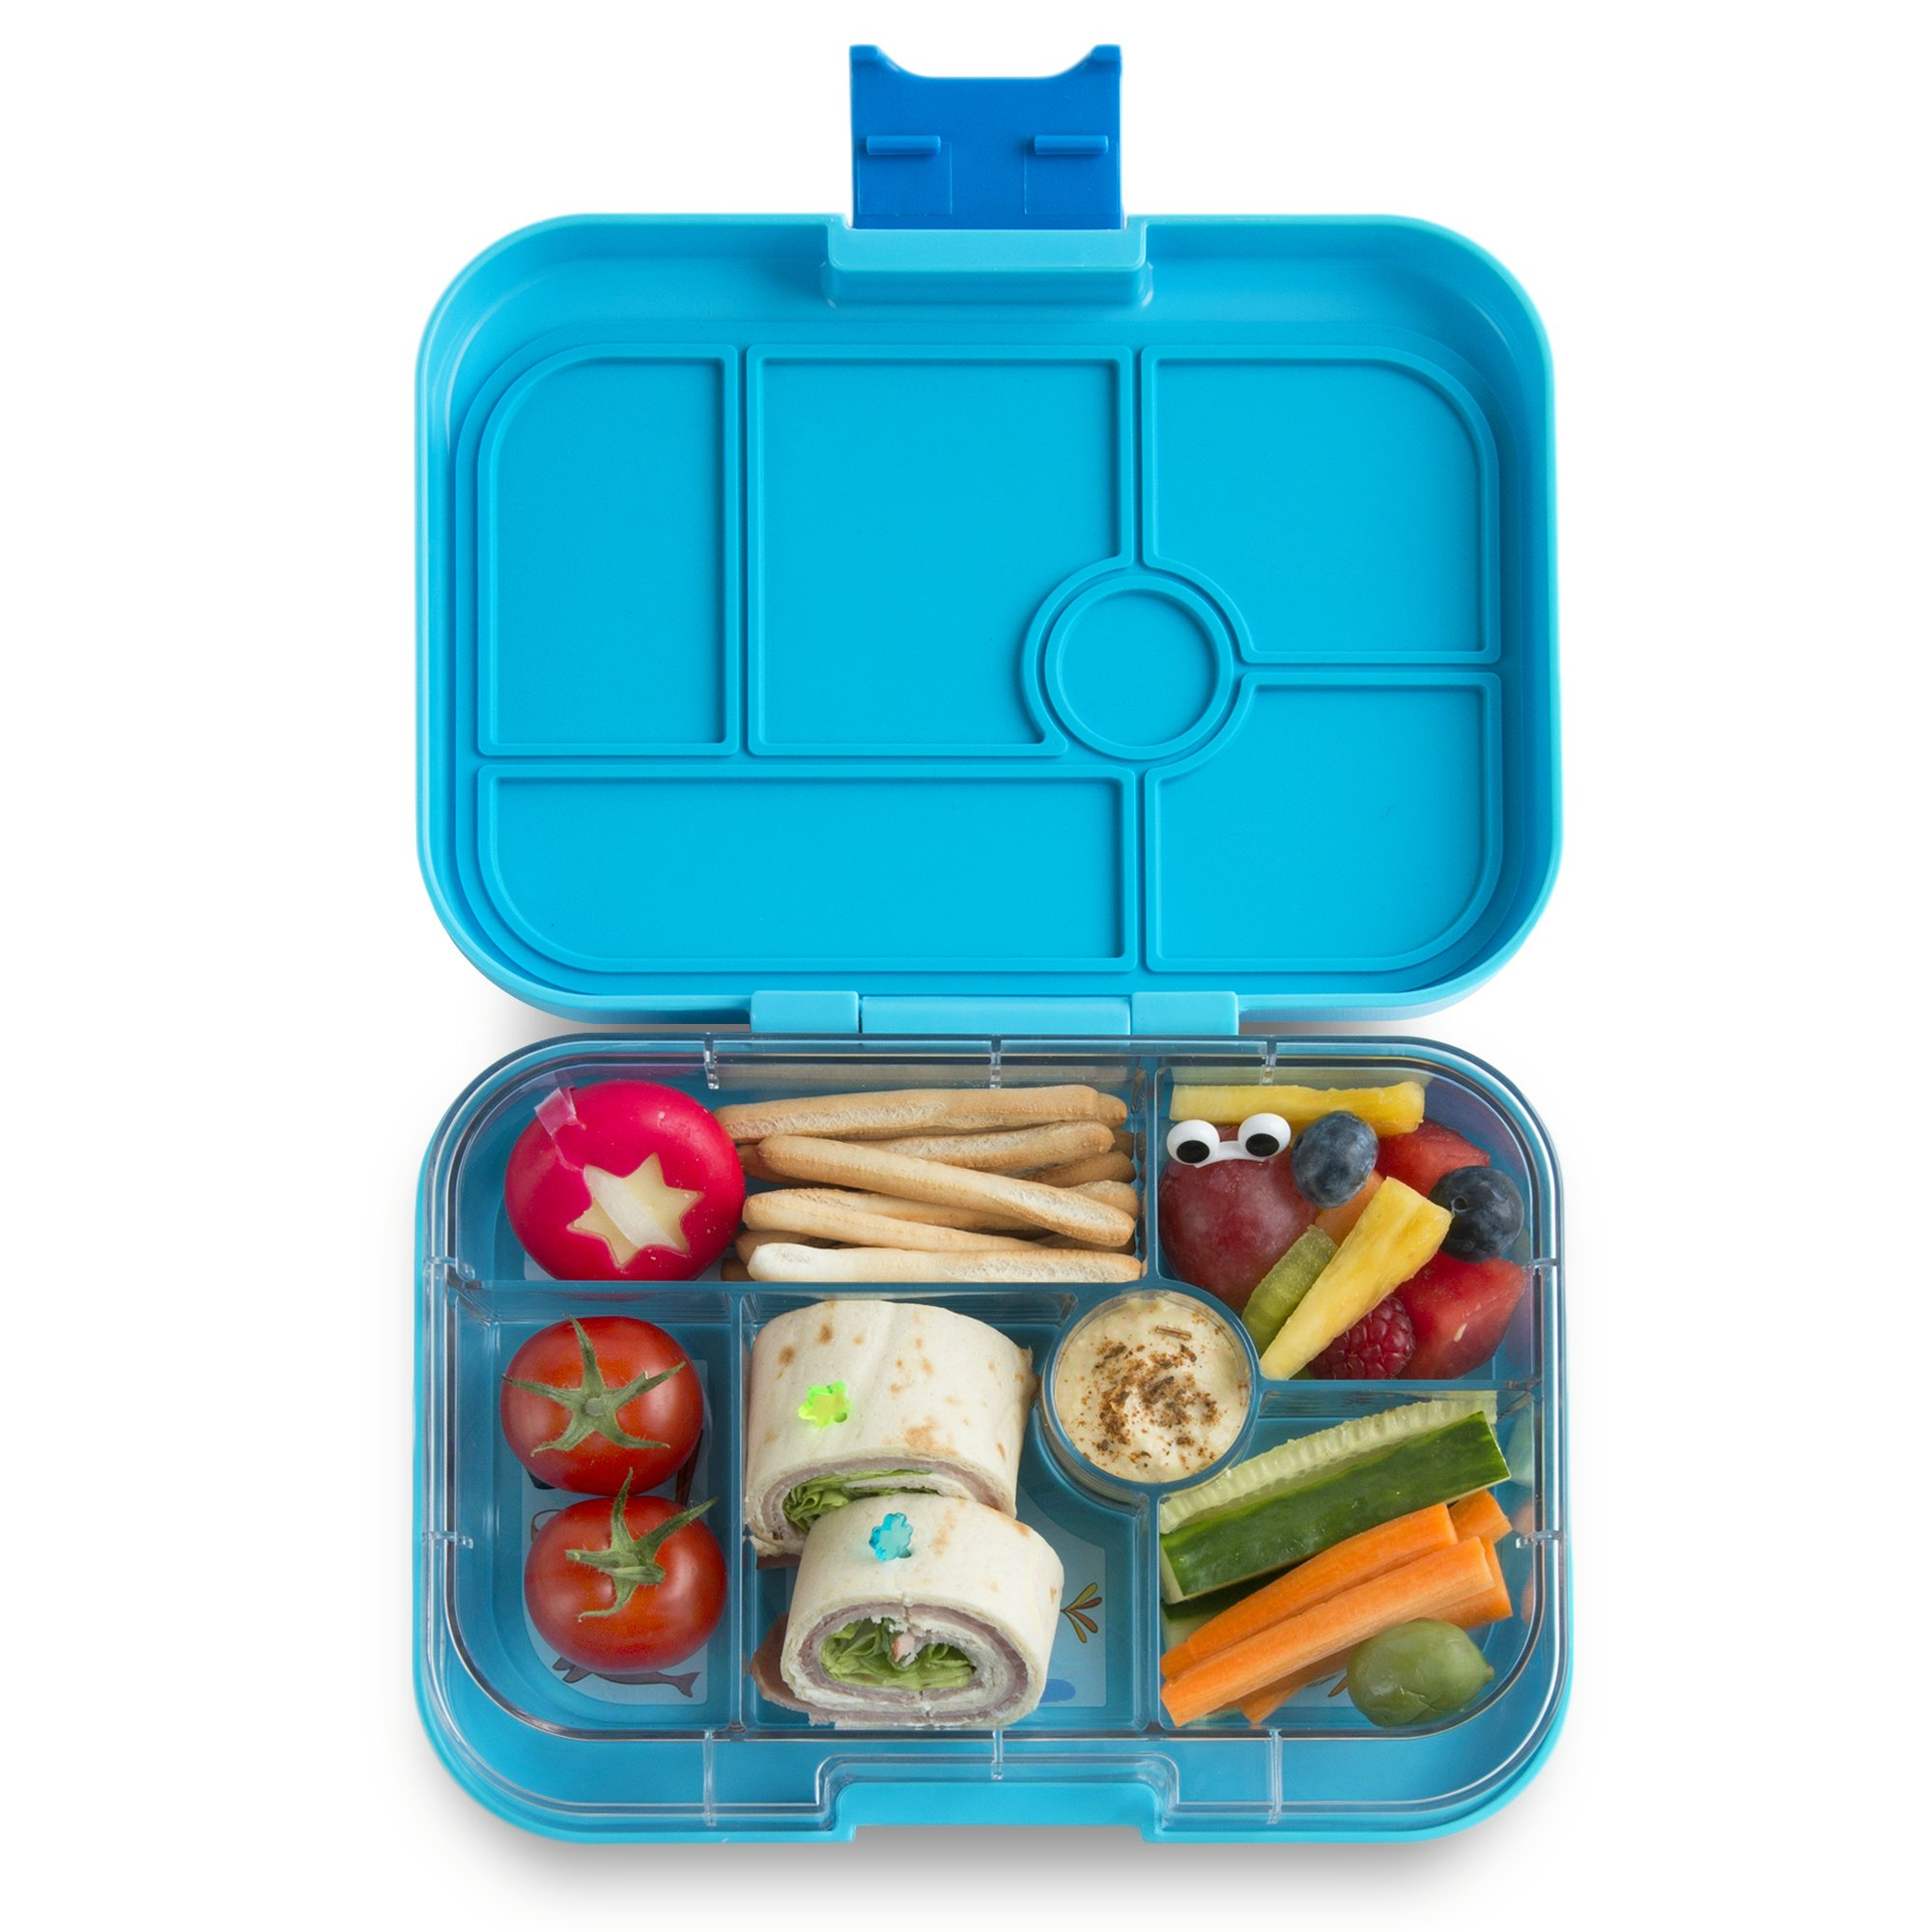 YUMBOX Original (Blue Fish) Leakproof Bento Lunch Box Container for Kids: Bento-style lunch box offers Durable, Leak-proof, On-the-go Meal and Snack Packing